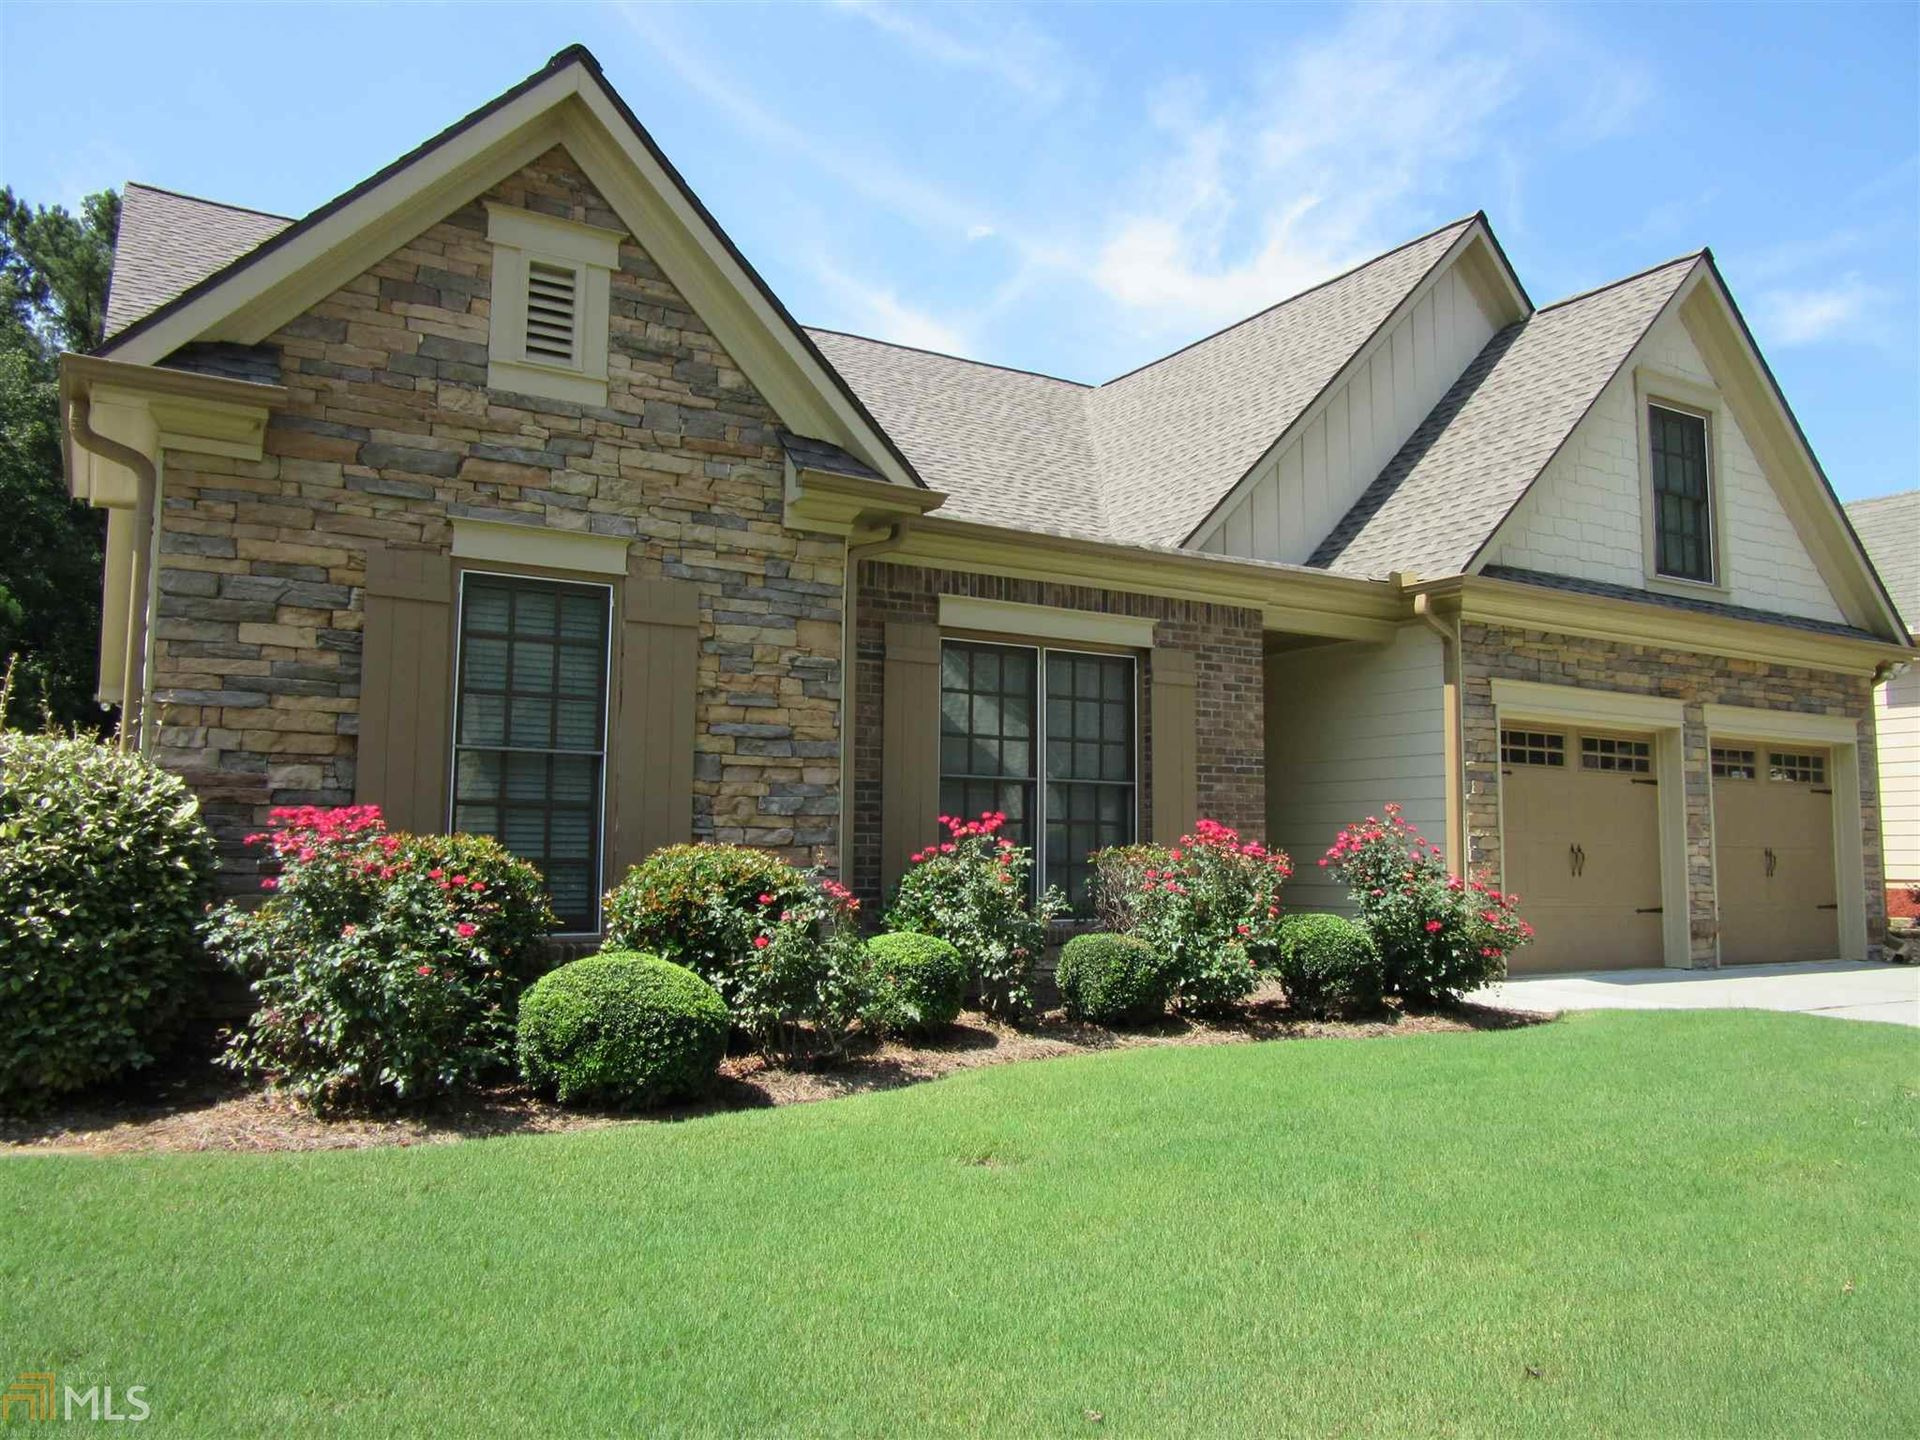 1724 Willoughby Dr, Buford, GA 30519 - MLS#: 8805234